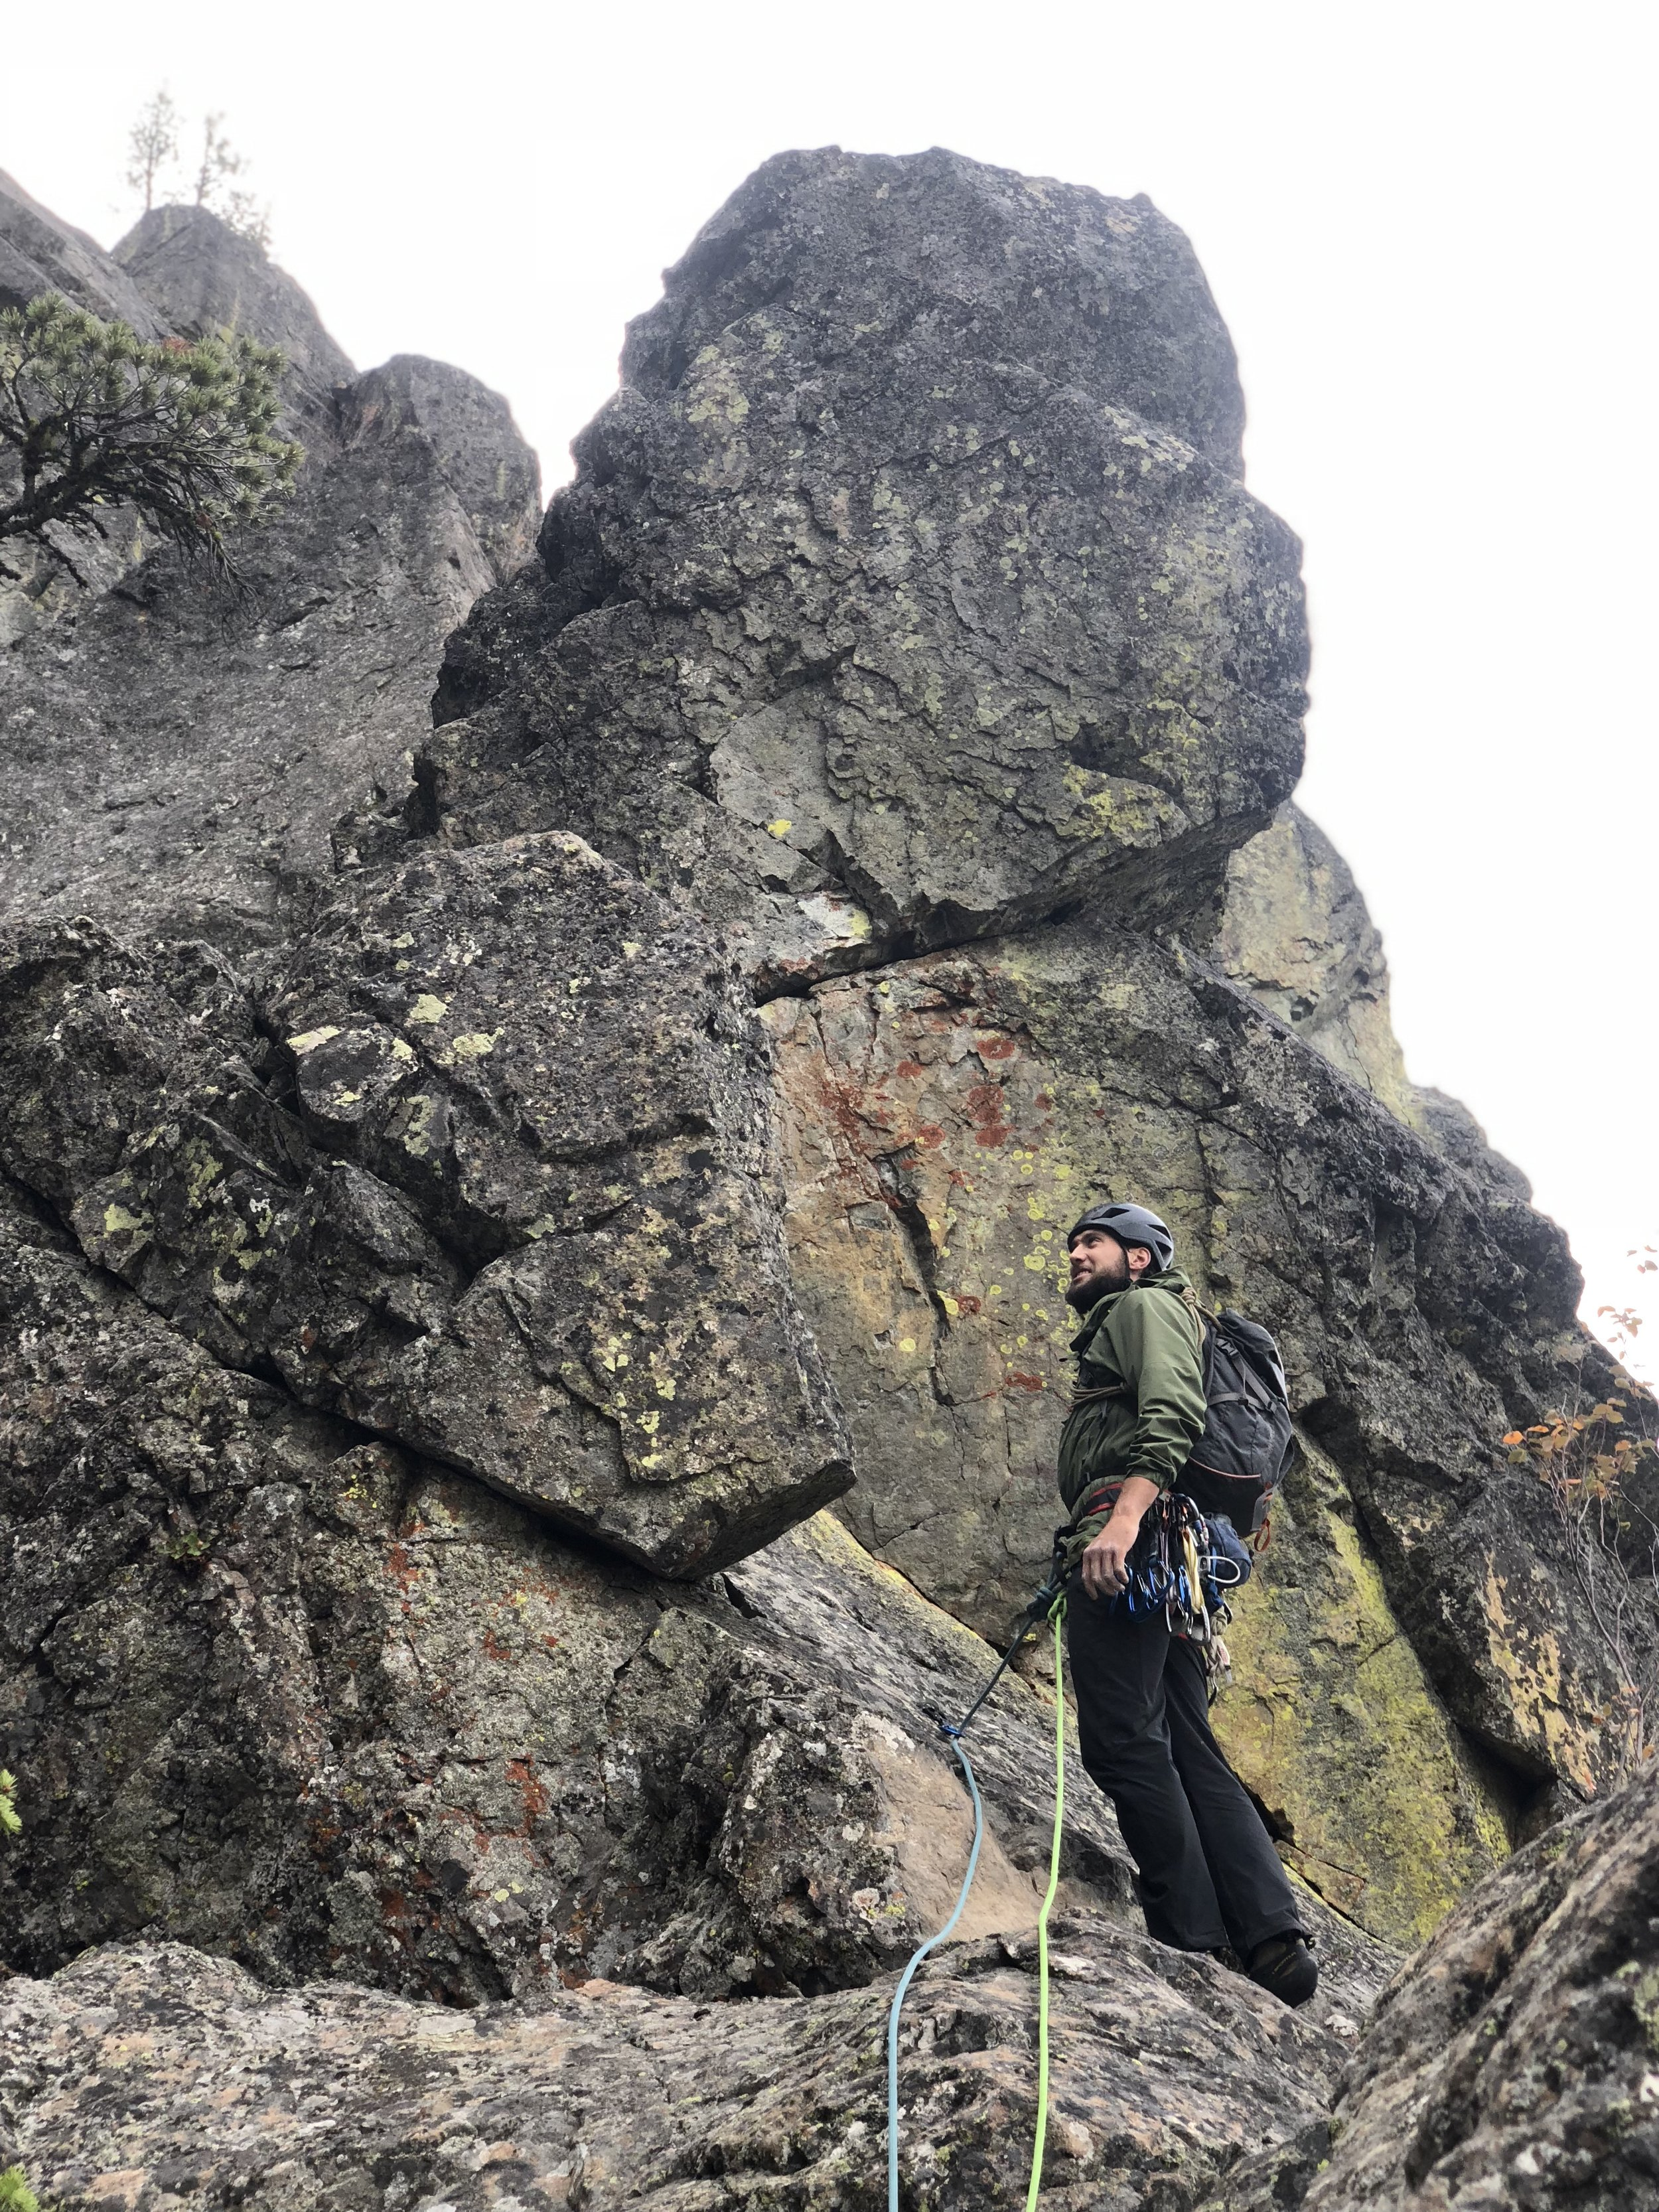 Ben looking up the route, half way done with Flyboys.